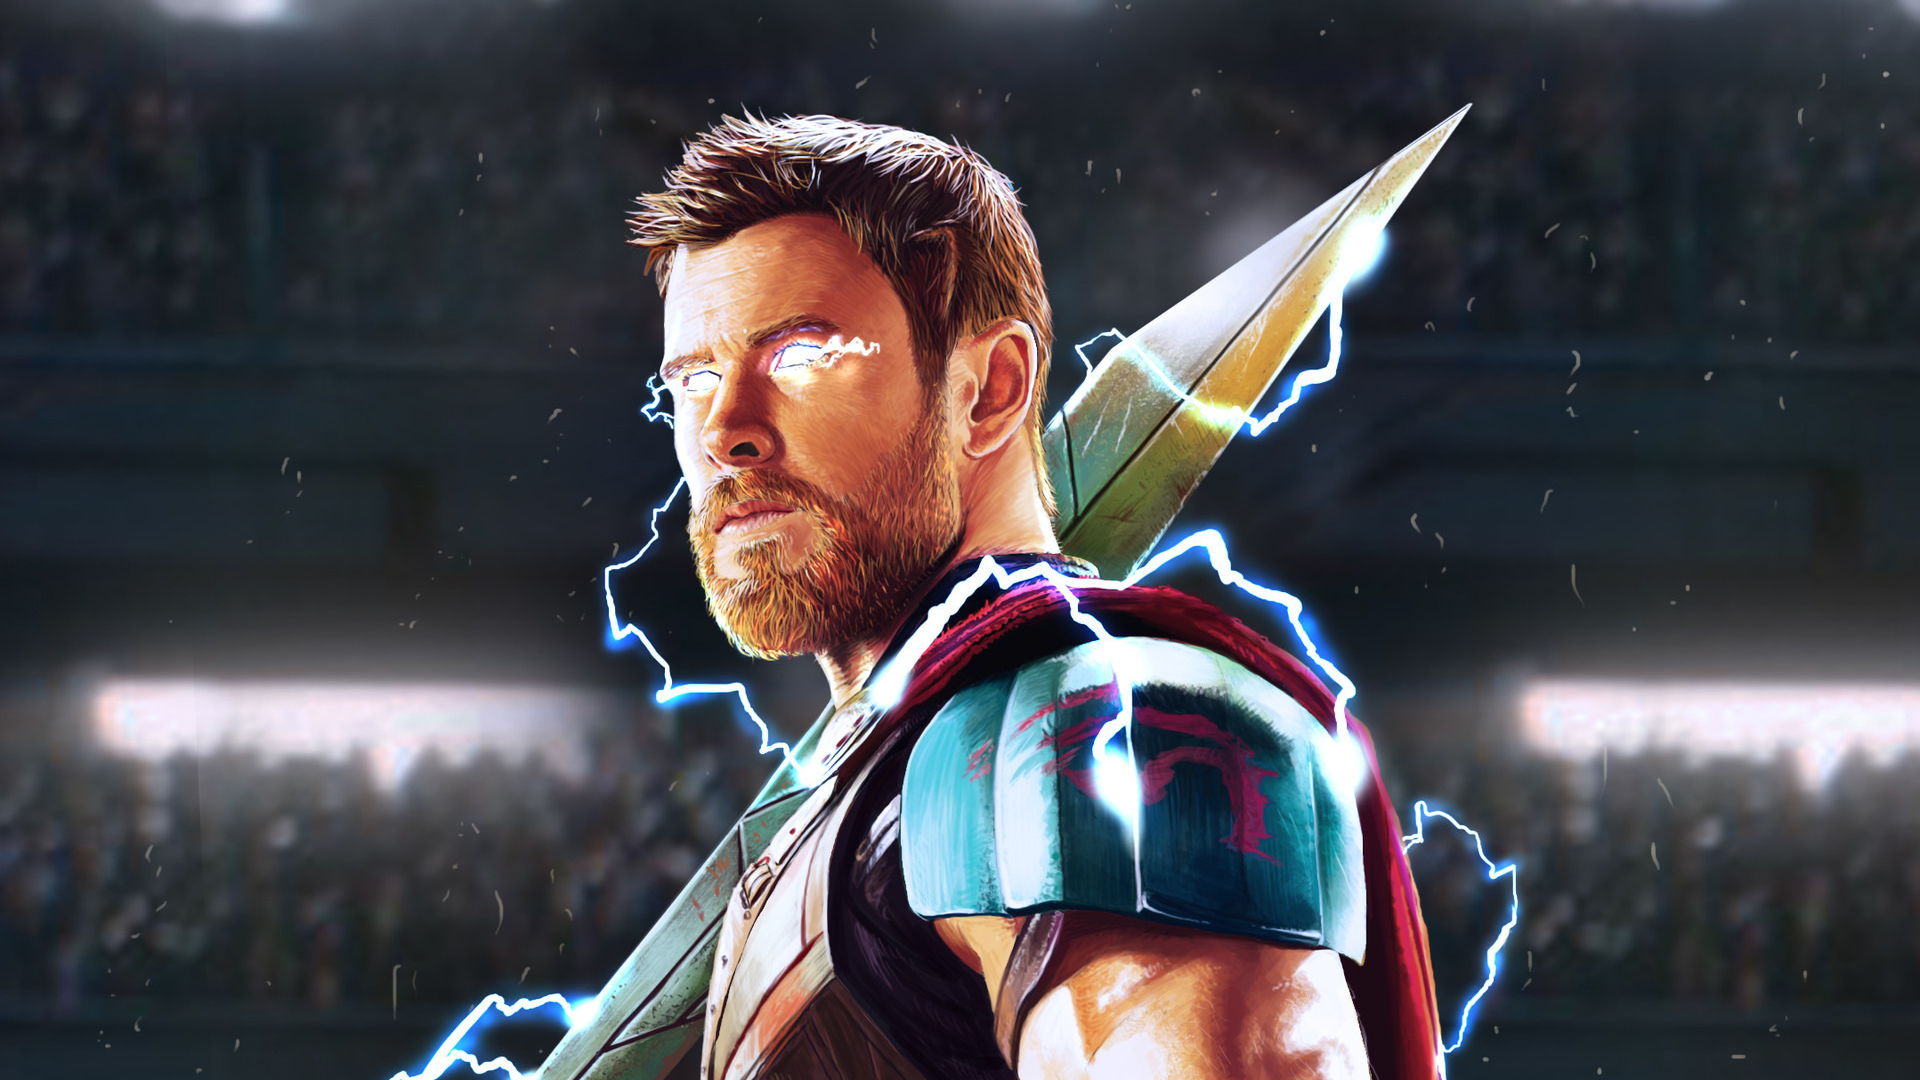 Download 1920x1080 wallpaper thor god of thunder artwork full hd hdtv fhd 1080p 1920x1080 - 1366x768 is 720p or 1080p ...